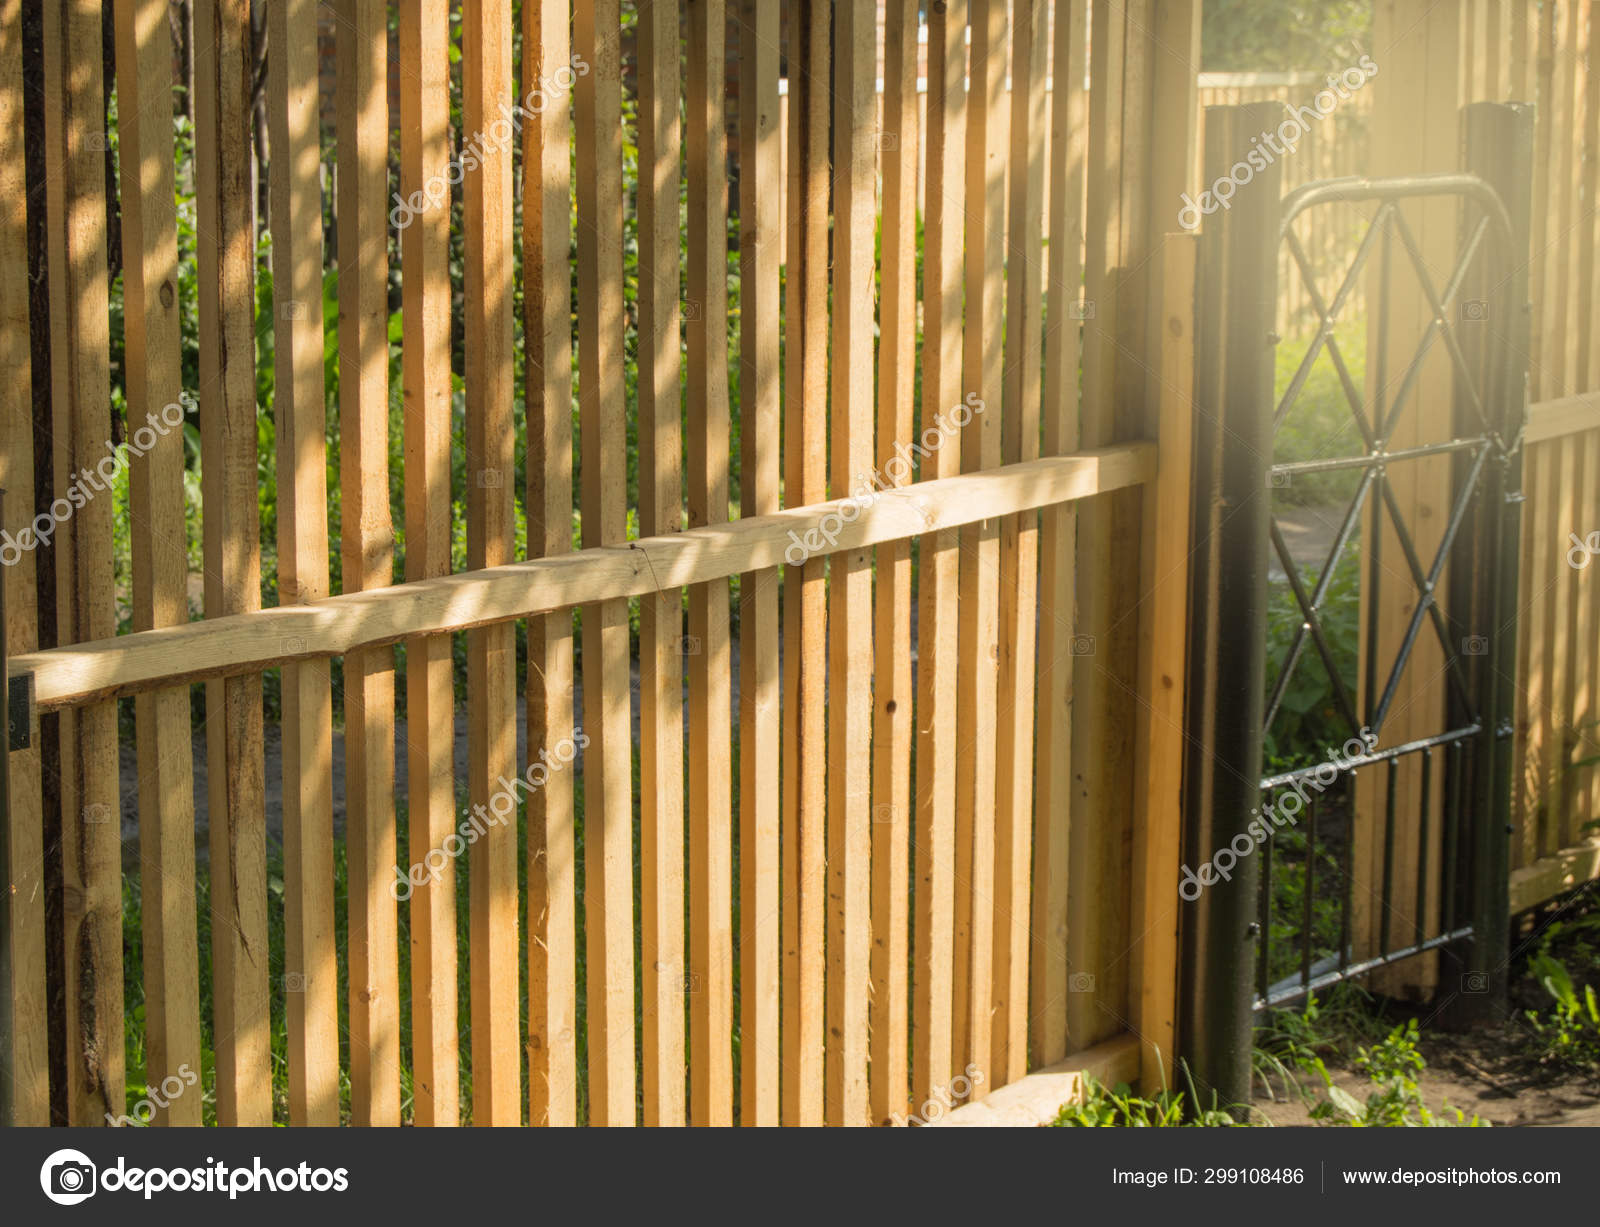 Picture of: Rustic New Wooden Fence With Black Metal Posts And Gates Garden And Vegetable Garden Fence On A Sunny Summer Day Against The Background Of Plants And Trees Stock Photo C Esweta3 Gmail Com